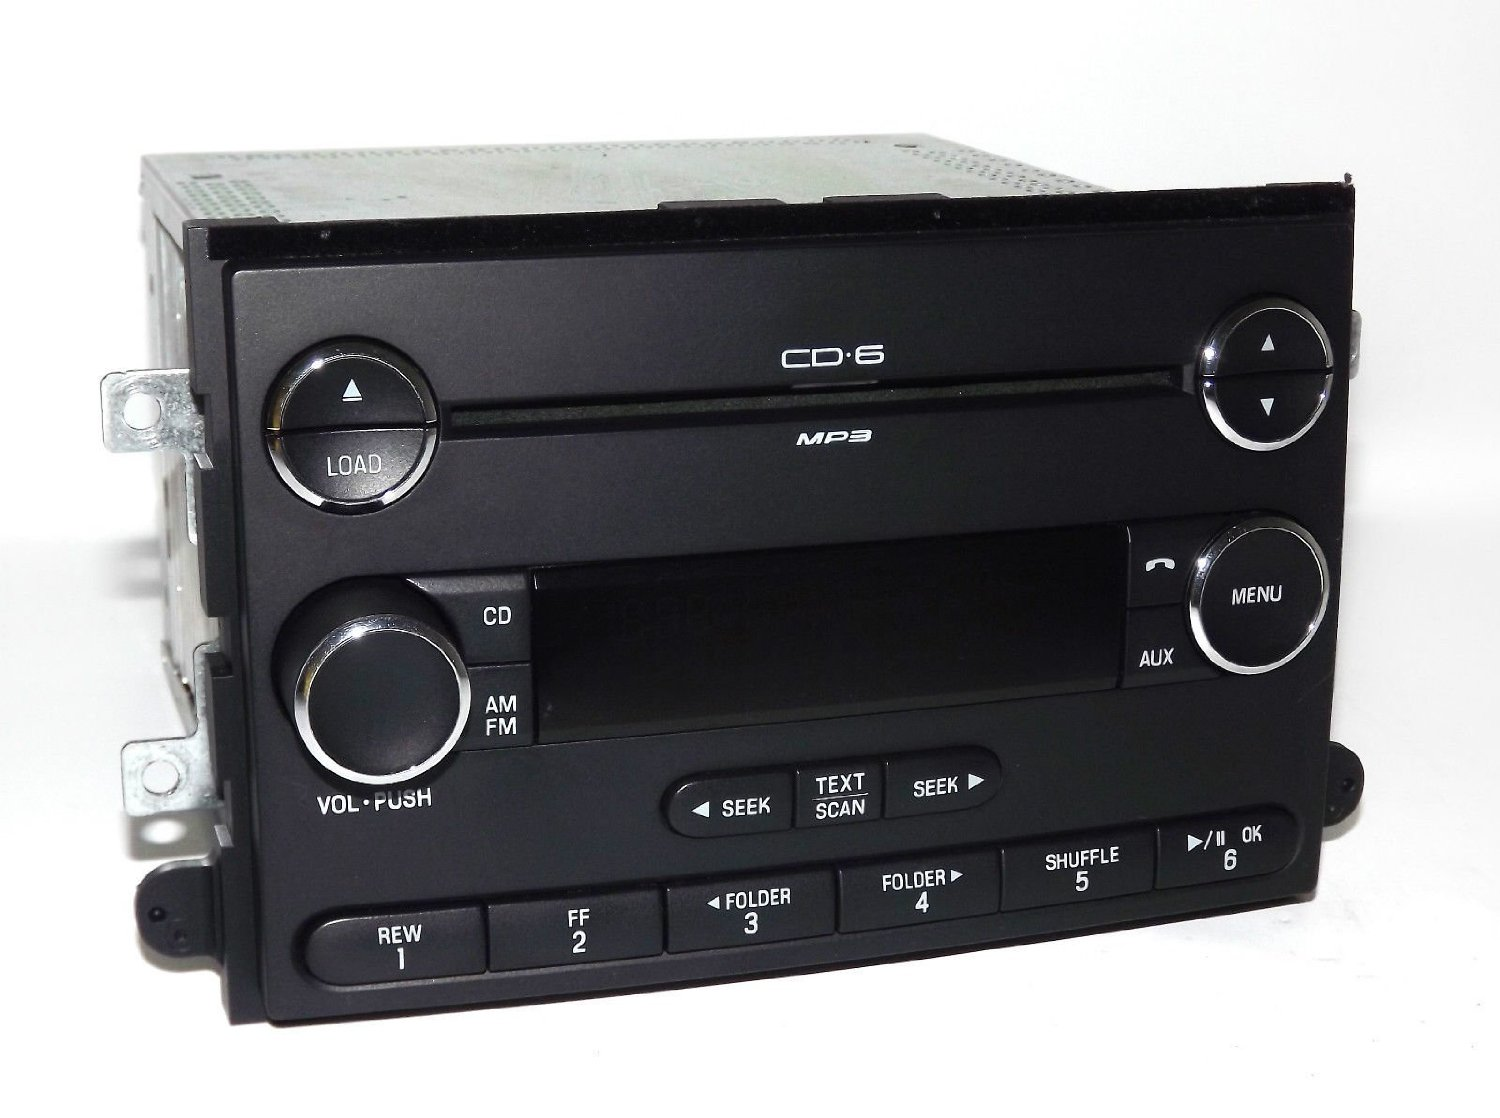 Ford Fusion 2006-09 Mercury Milan AM FM 6 Disc CD Radio Chrome - 8E5T-18C815-AF